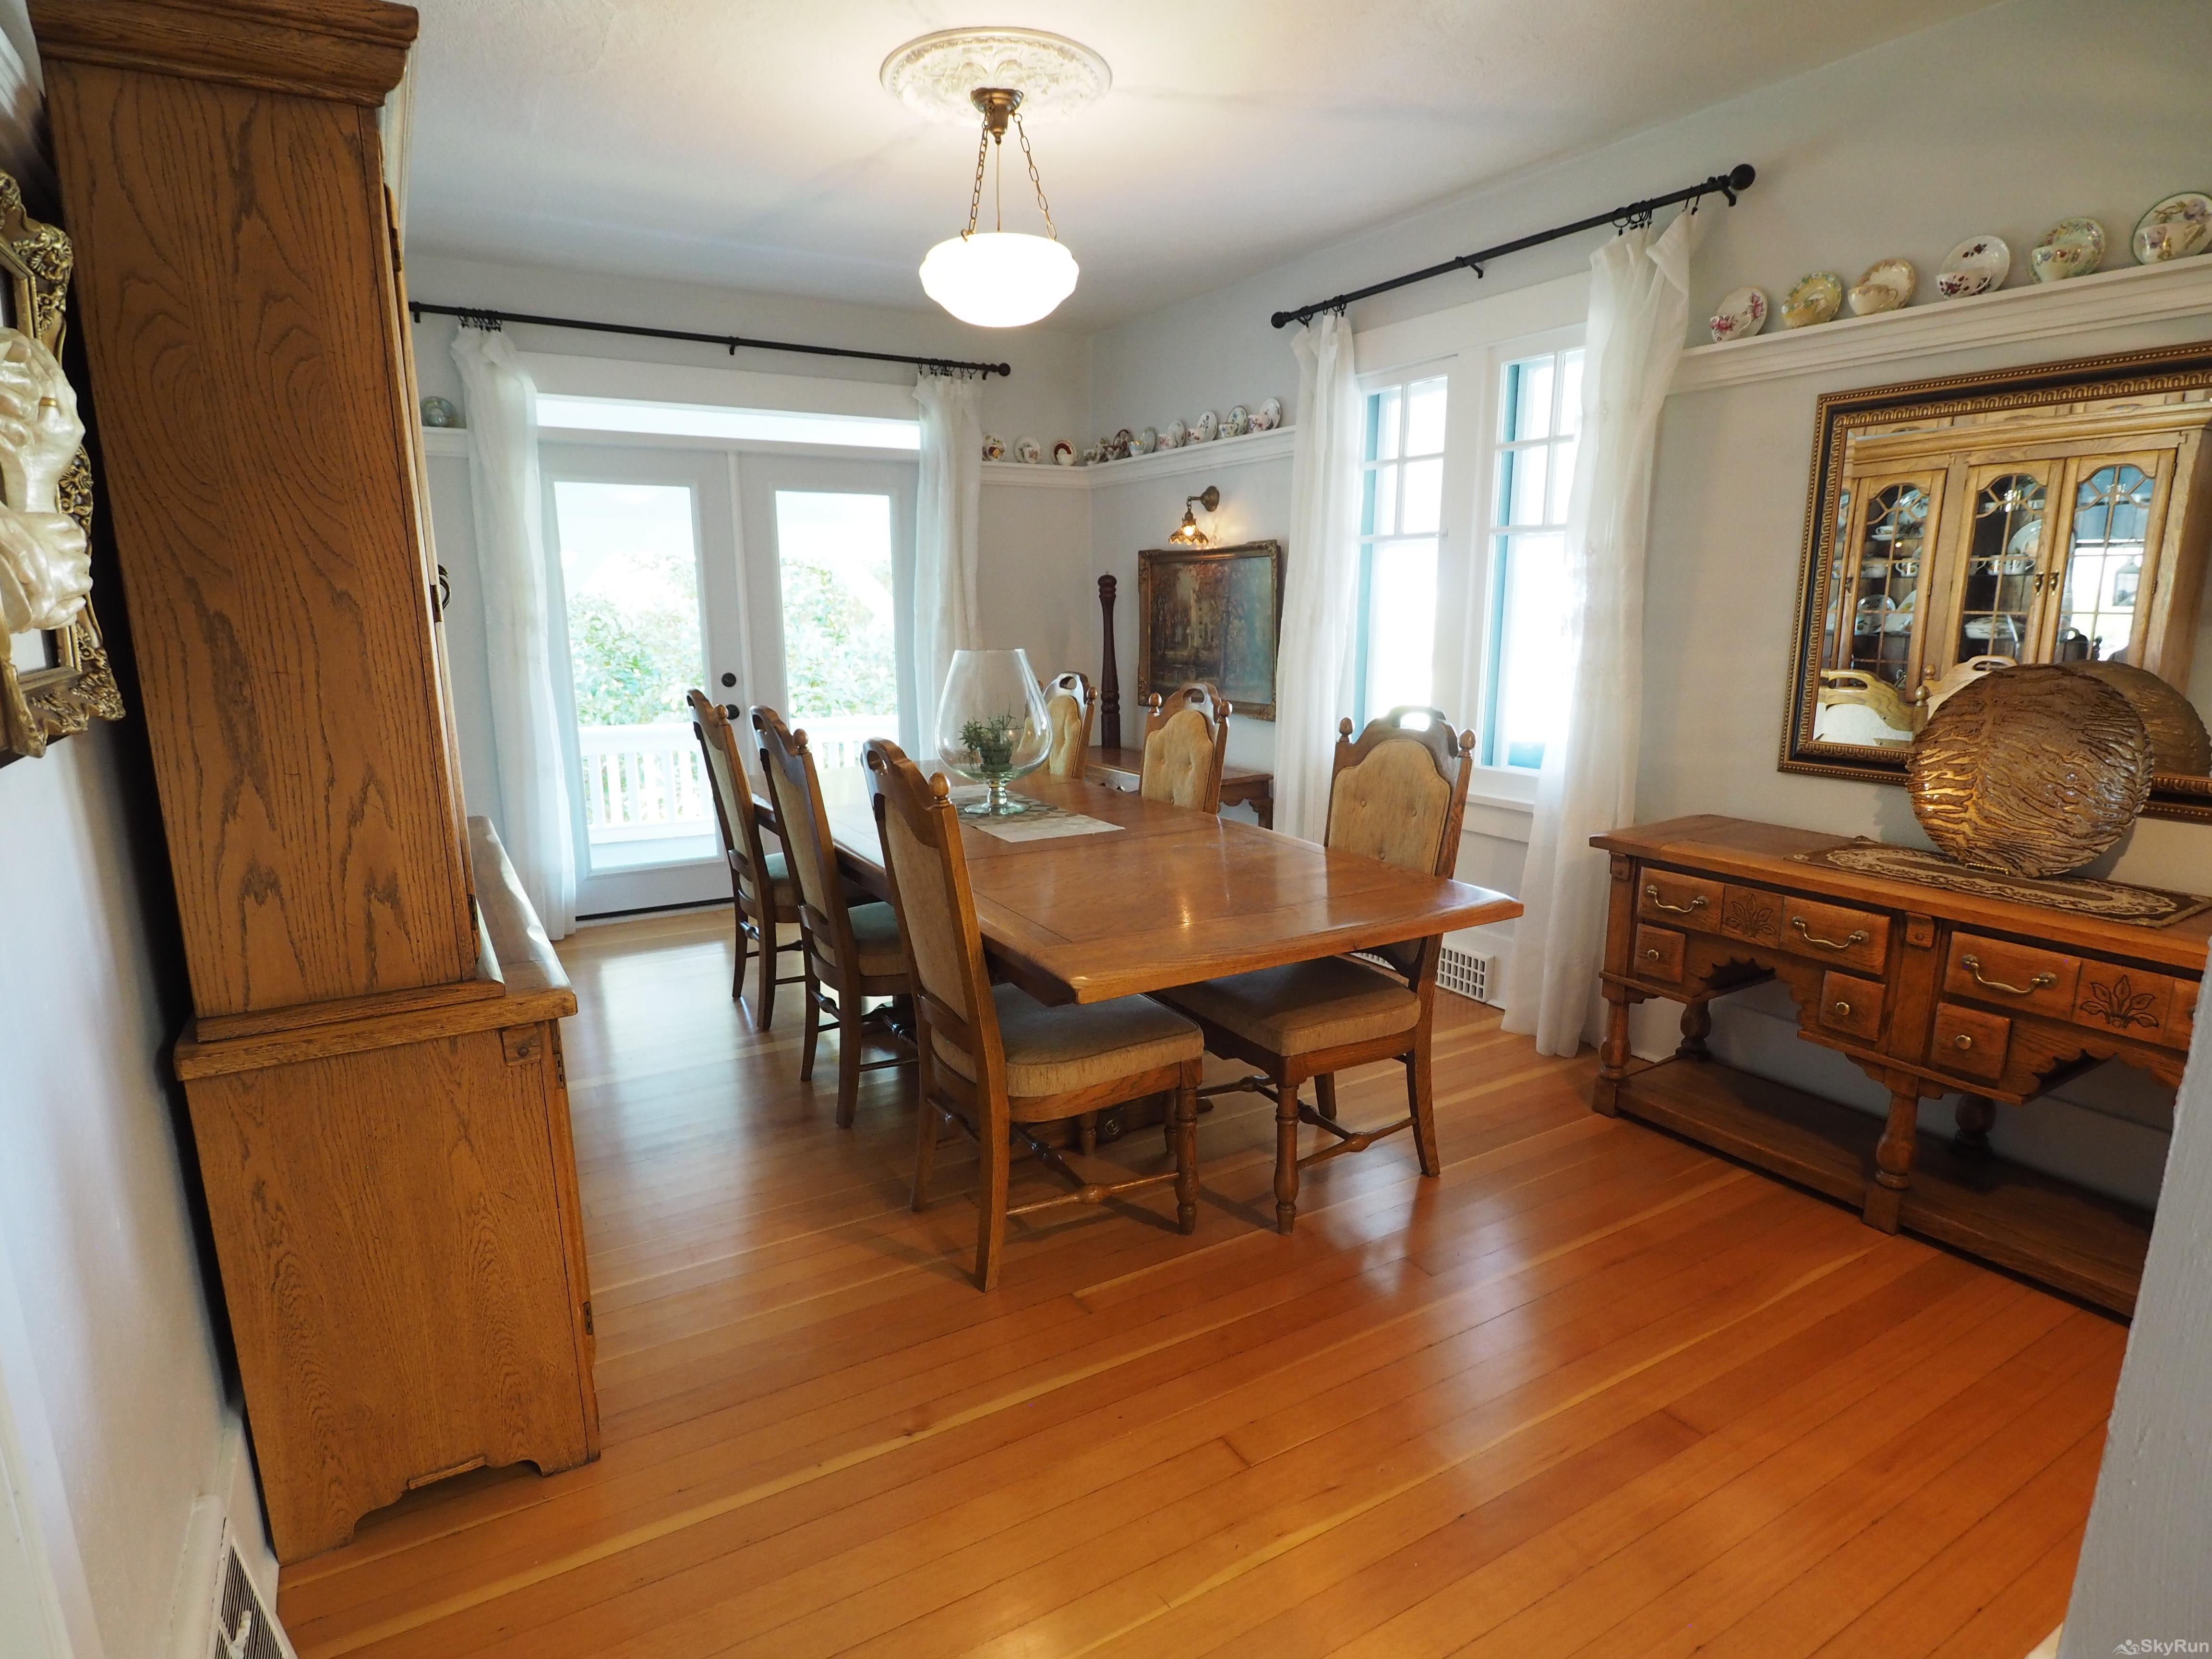 Penticton Country Estate The hardwood floors and antiques create the luxury character experience from a time passed